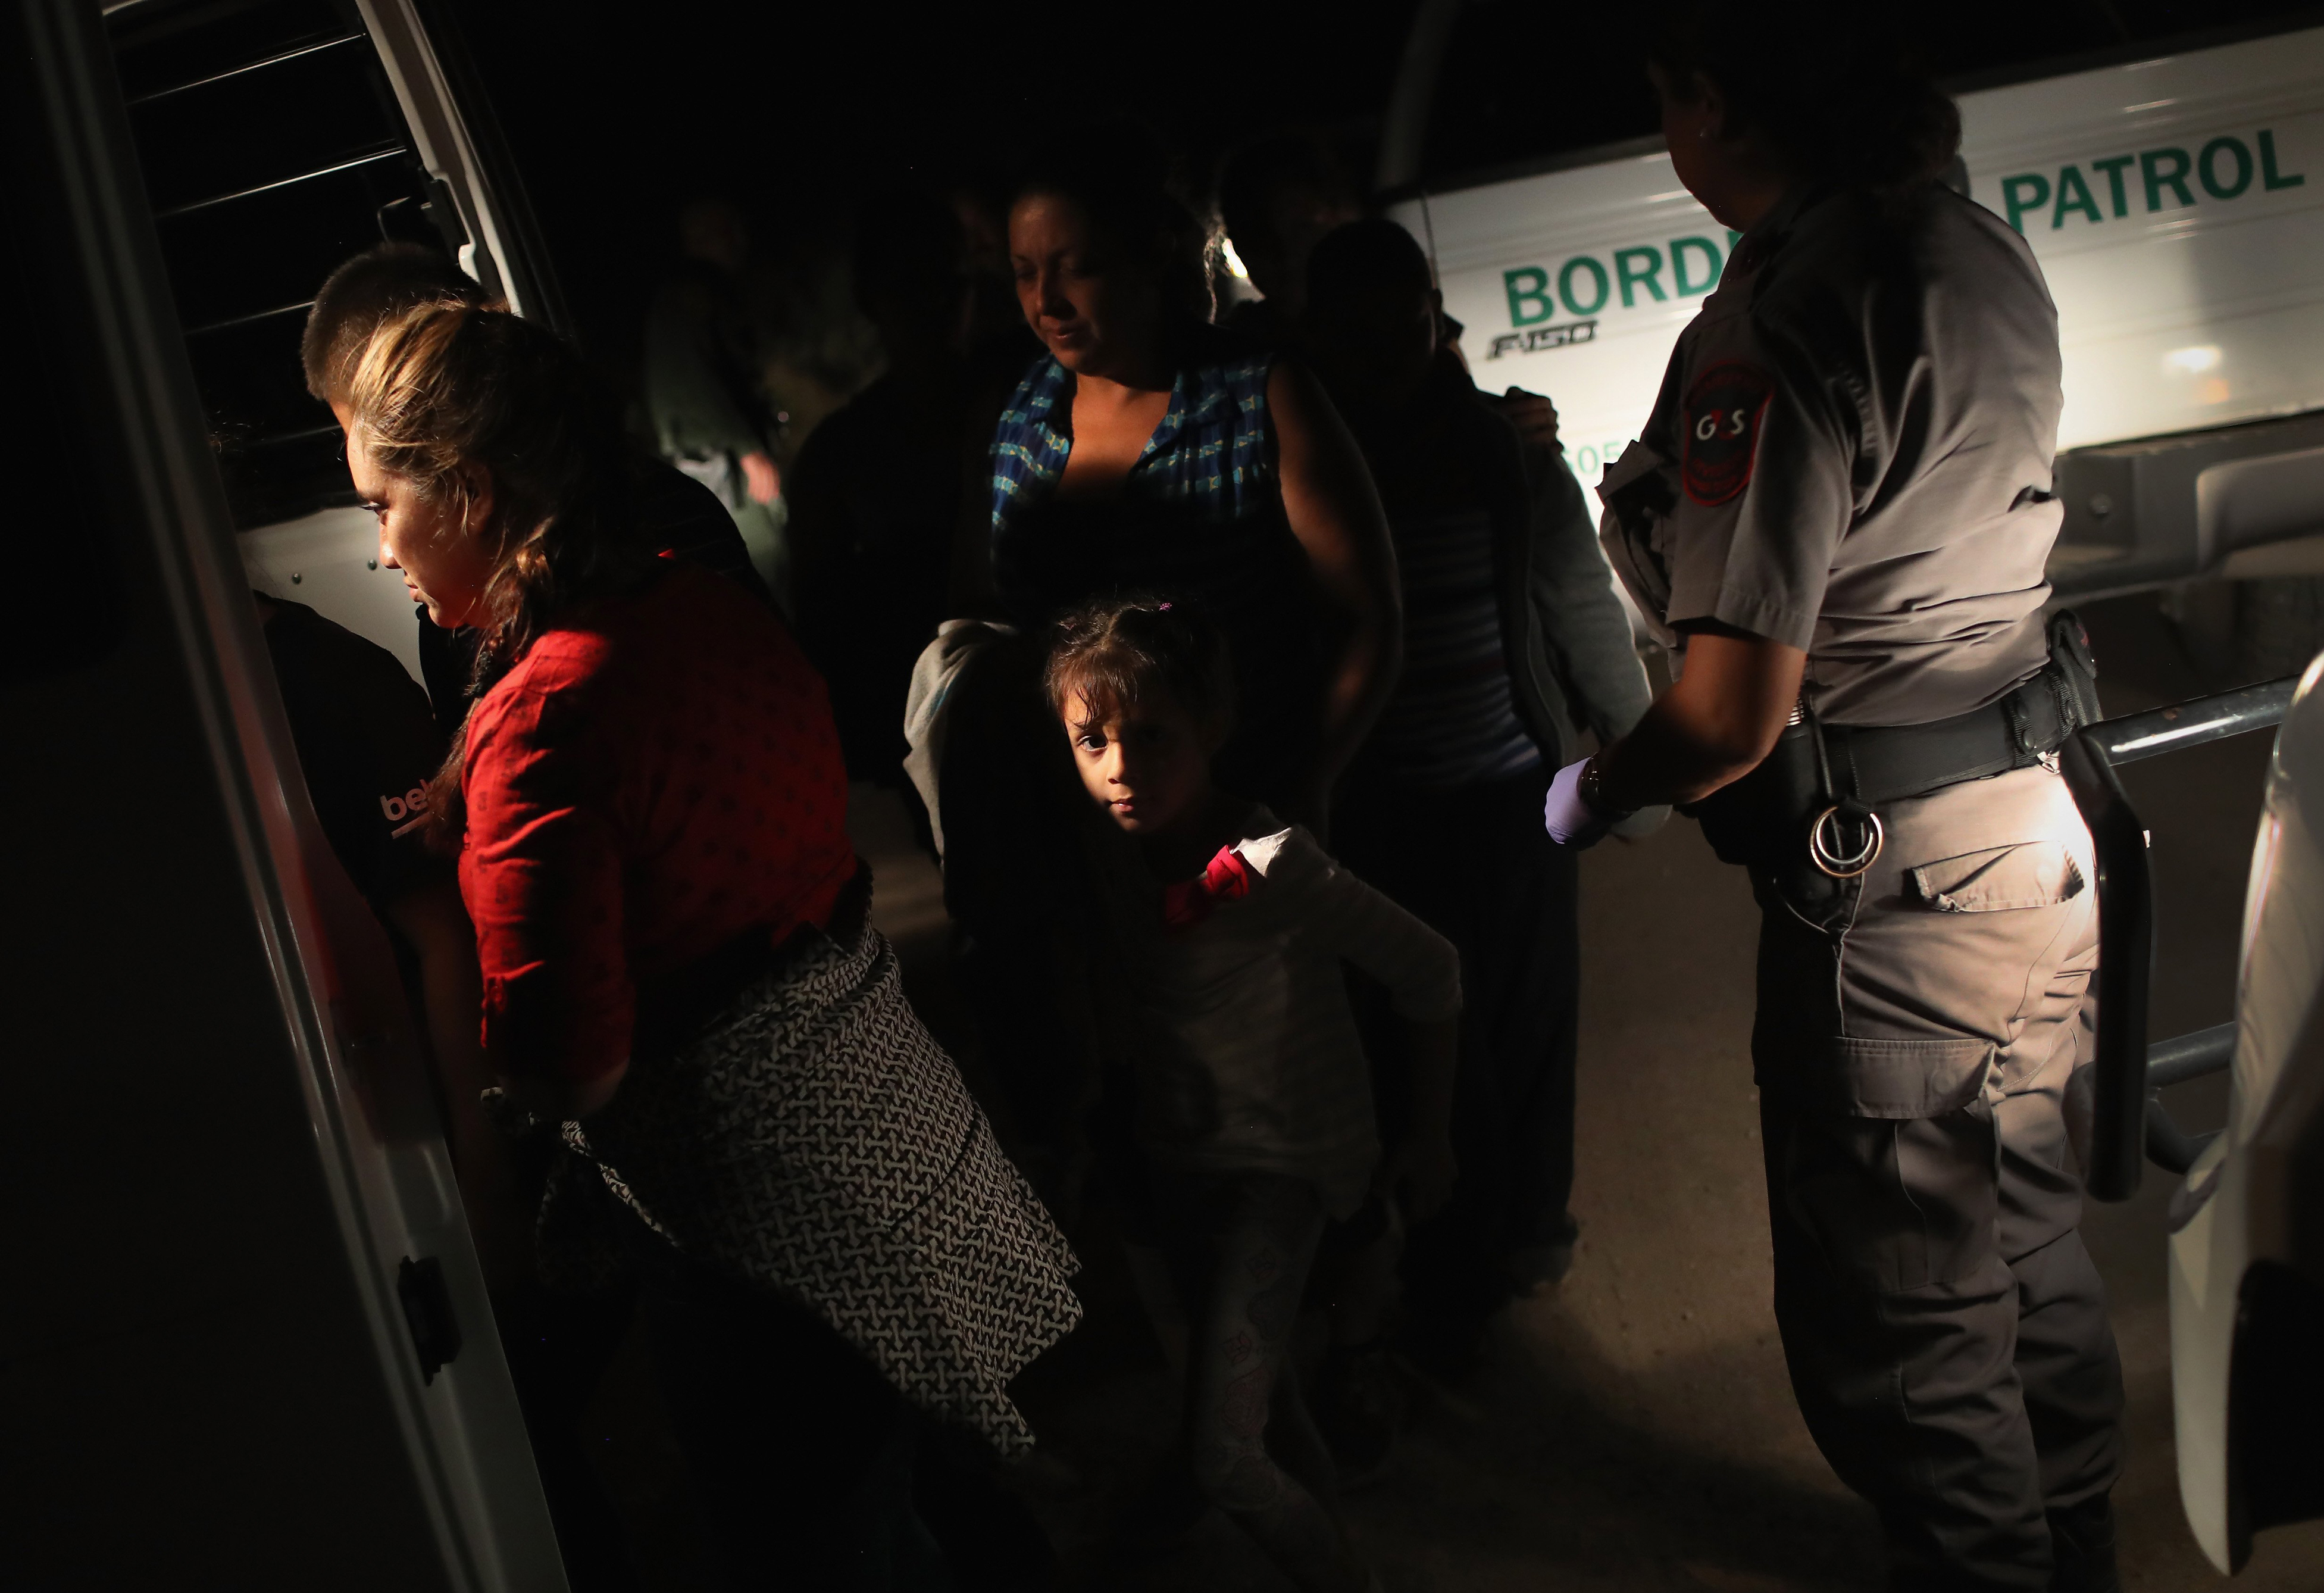 U.S. Border Patrol agents detain a group of Central American asylum seekers near the U.S.-Mexico border in McAllen, Texas on June 12, 2018.